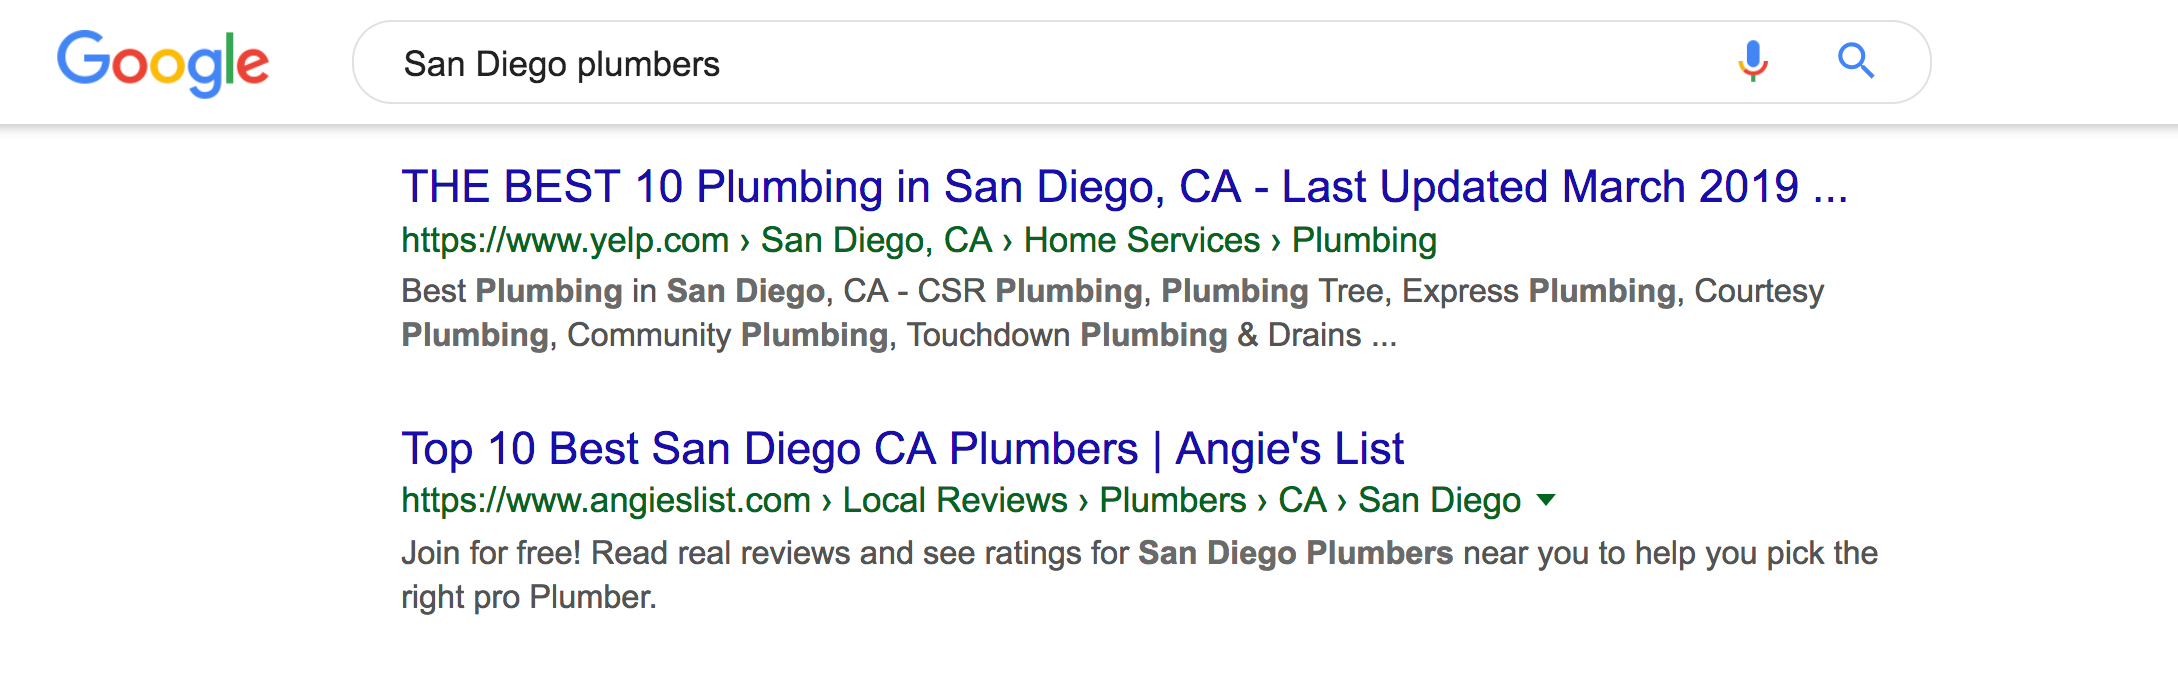 Housecall Pro Plumbing Marketing Ideas Google search